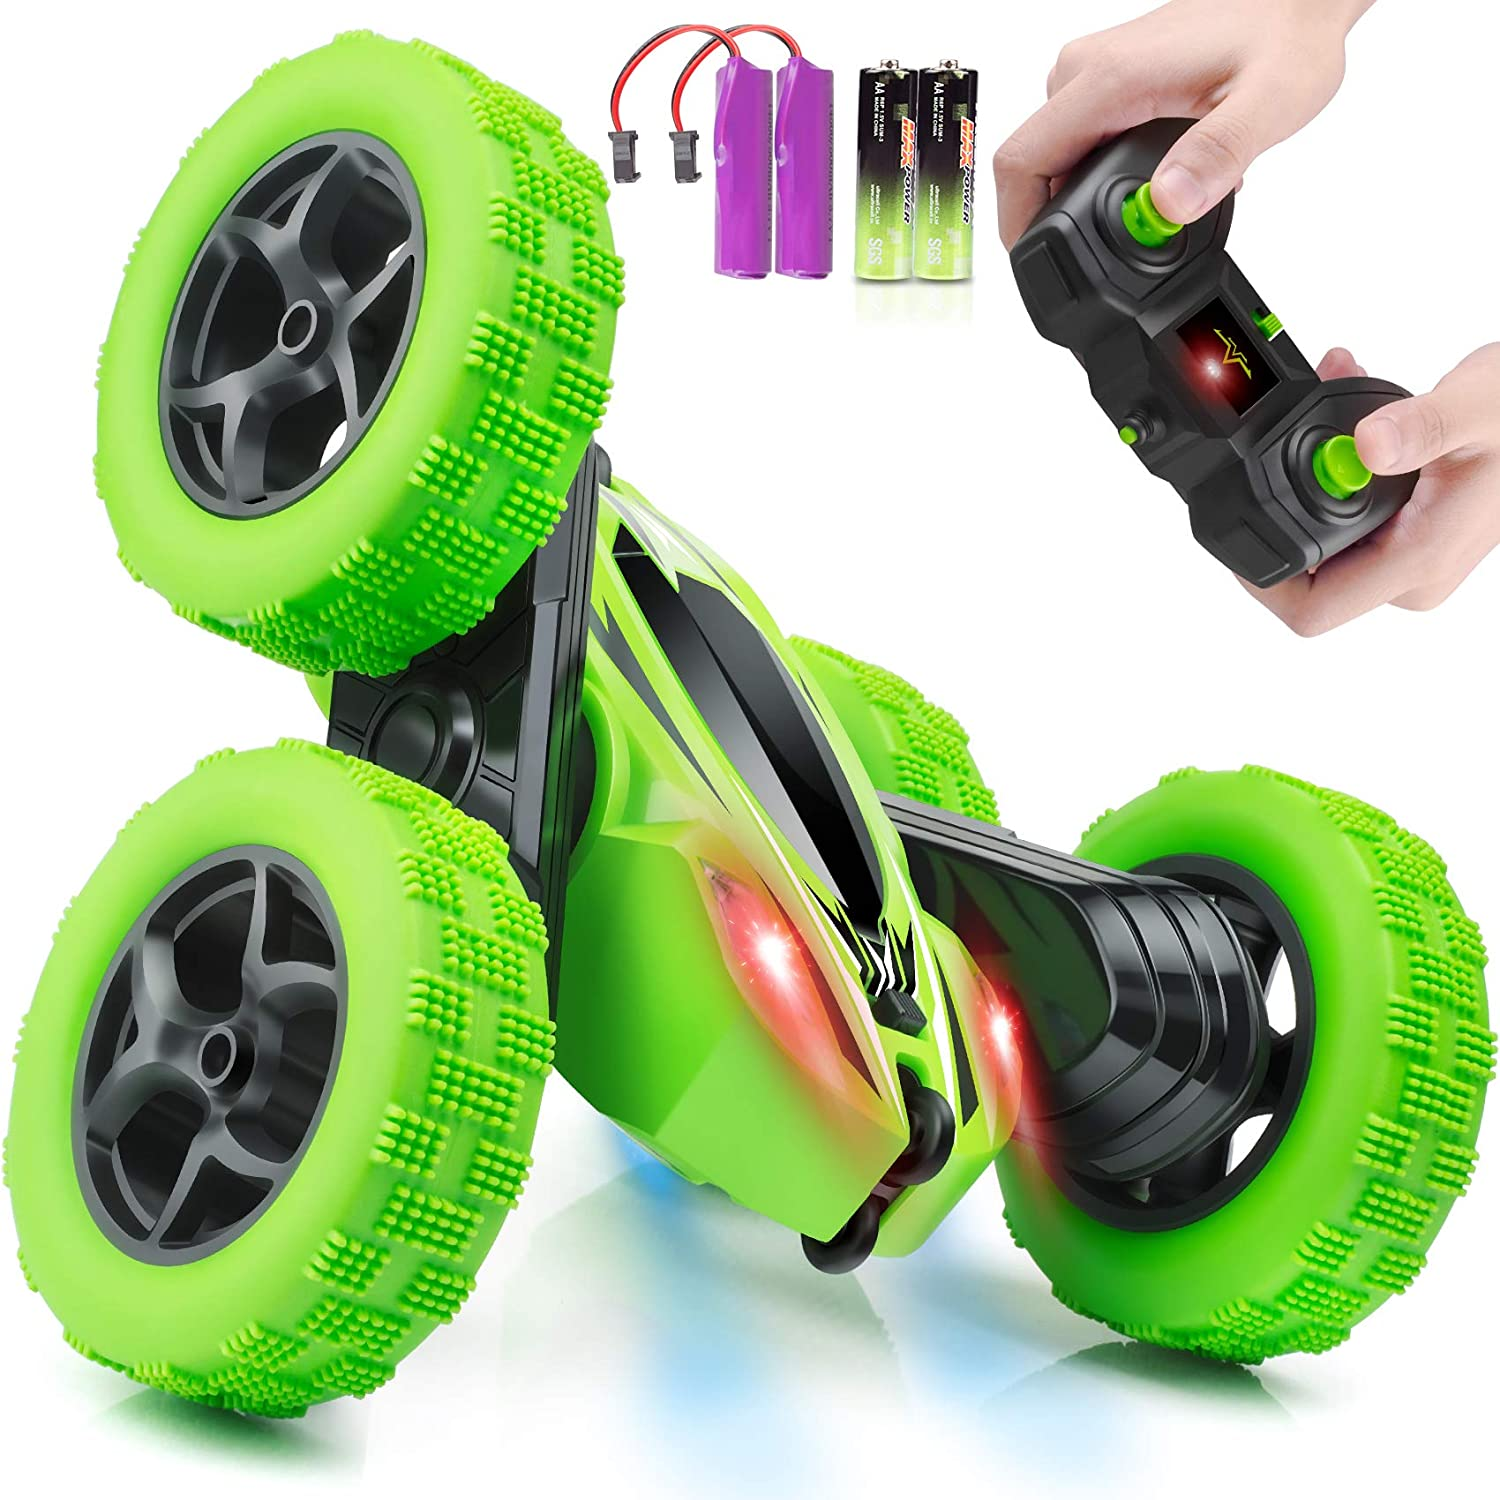 Remote Control Car,Rc Cars Stunt Car Toy,4wd 2.4ghz Double Sided Rotating Rc  Car With Headlights - Buy Rc Cars Product on Alibaba.com